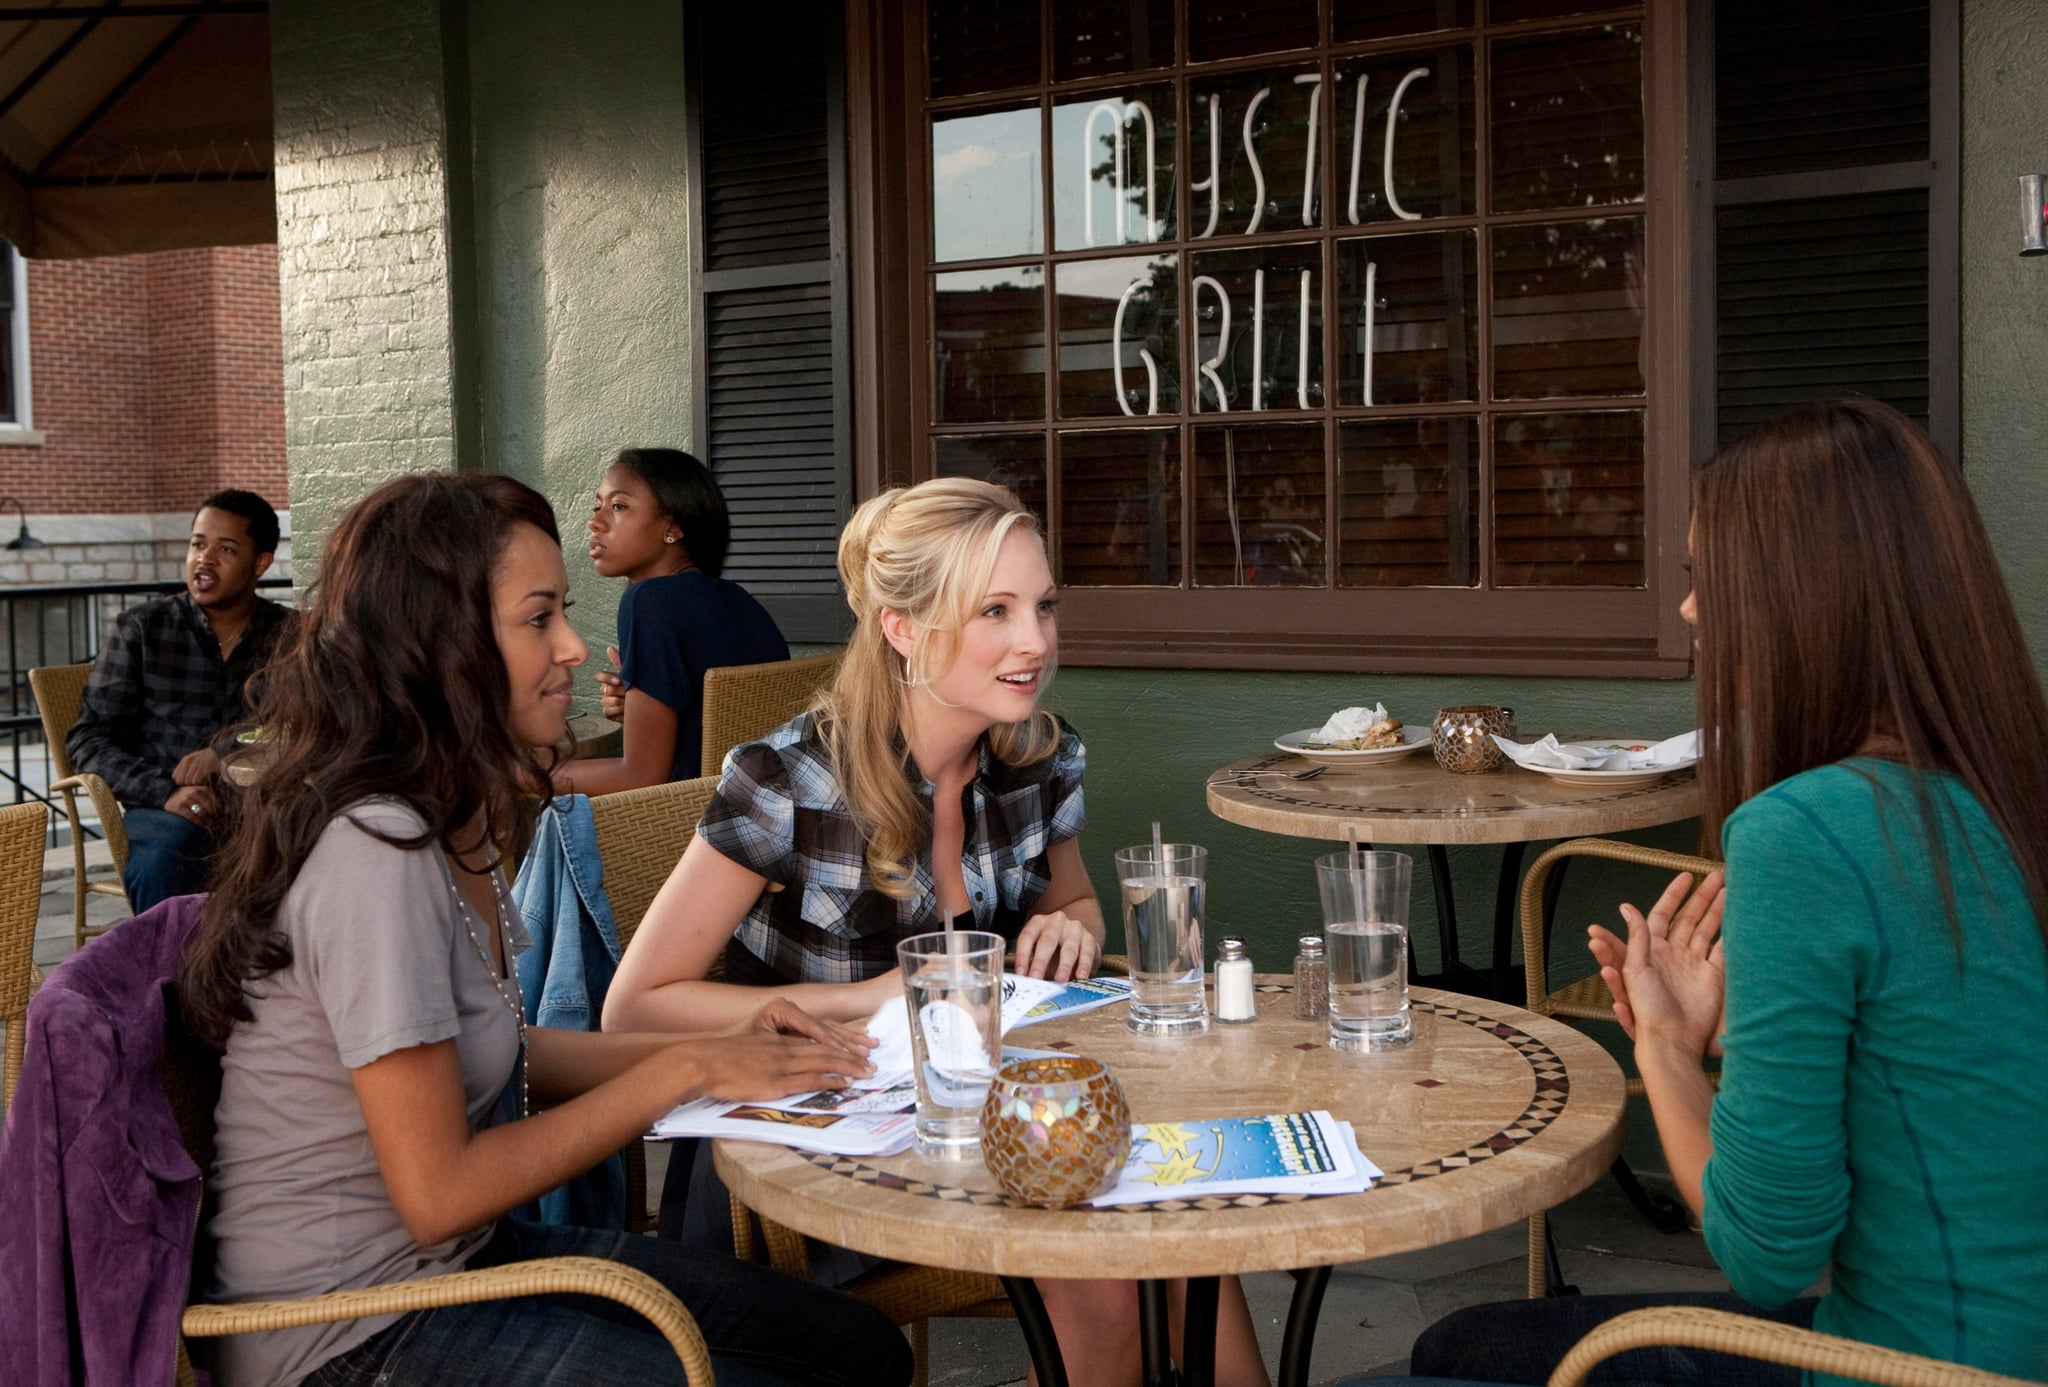 THE VAMPIRE DIARIES, (from left): Katerina Graham, Candice Accola, Nina Dobrev, 'The Night Of The Comet', (Season 1, aired Sept. 17, 2009), 2009-. photo: Bob Mahoney /  CW / Courtesy: Everett Collection